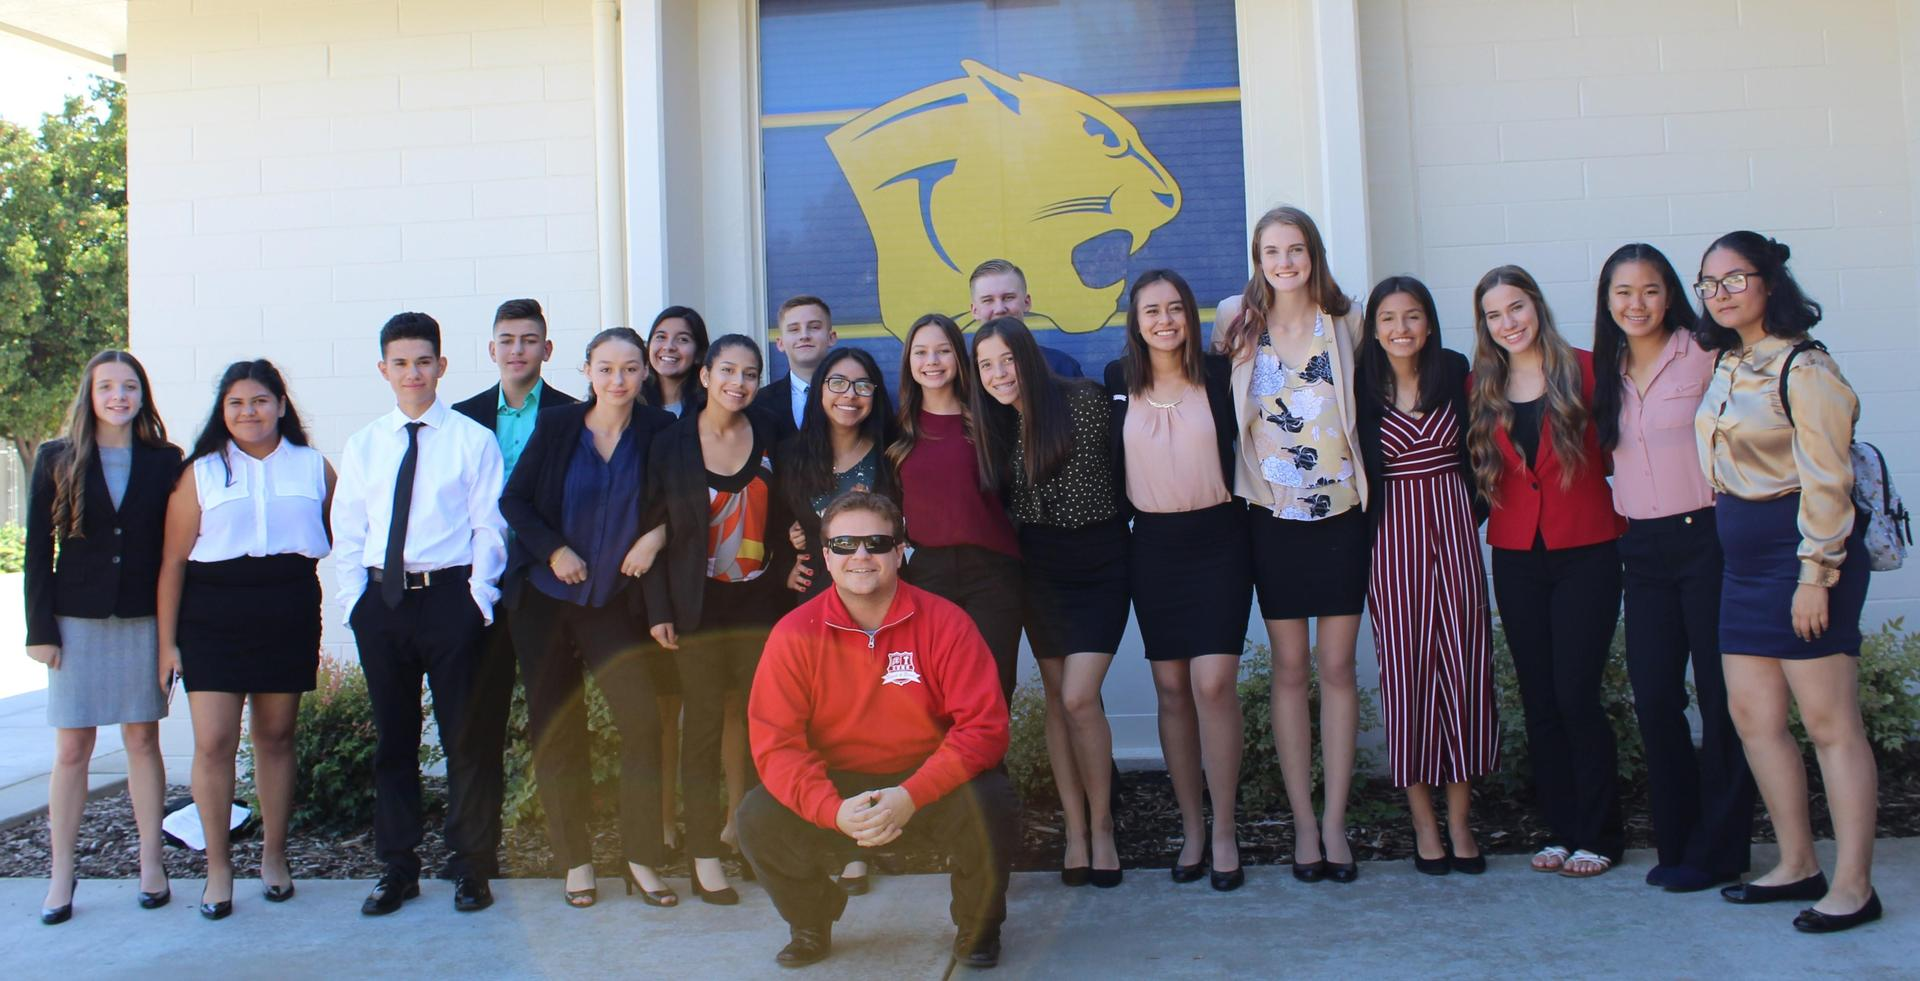 Speech and Debate students and staff at Clovis High